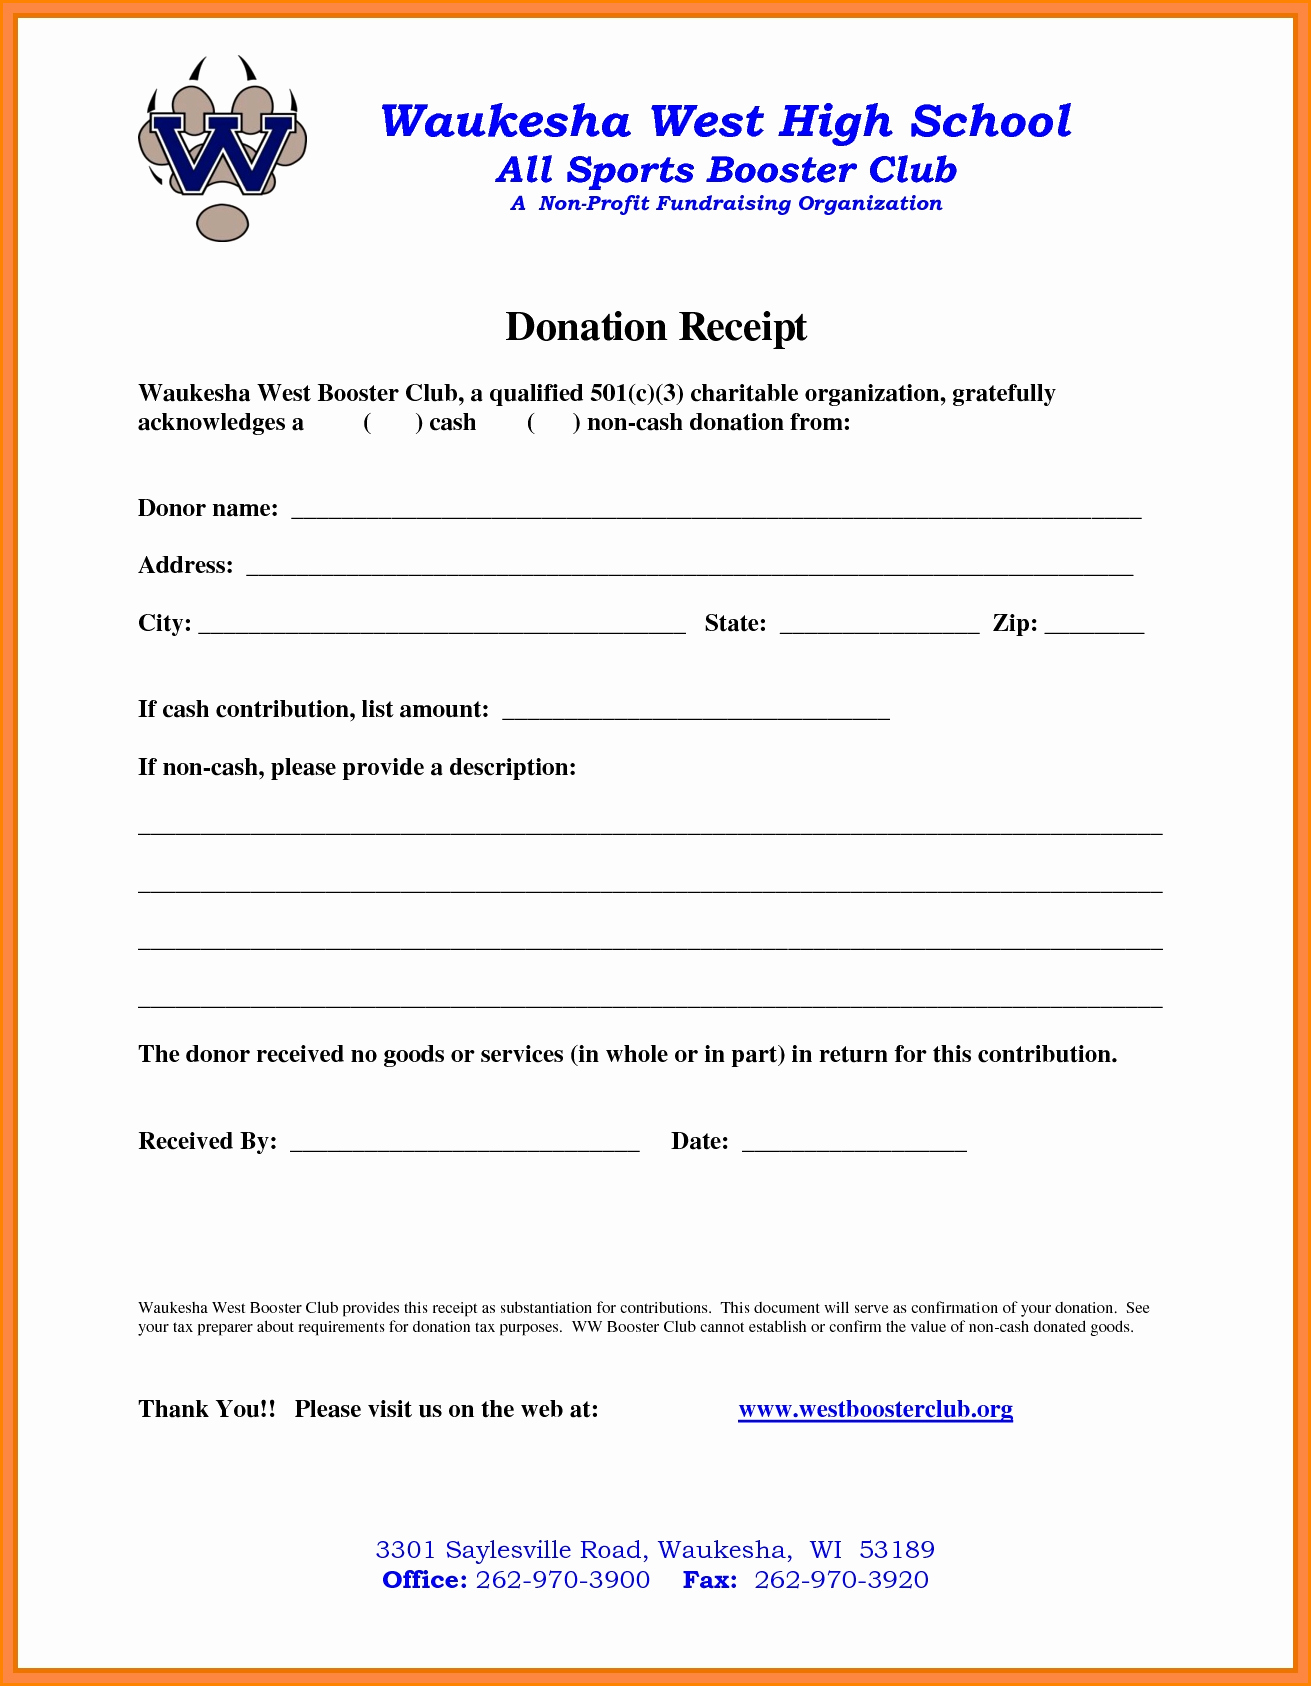 501c3 Donation Receipt Template New 5 501c3 Donation Receipt